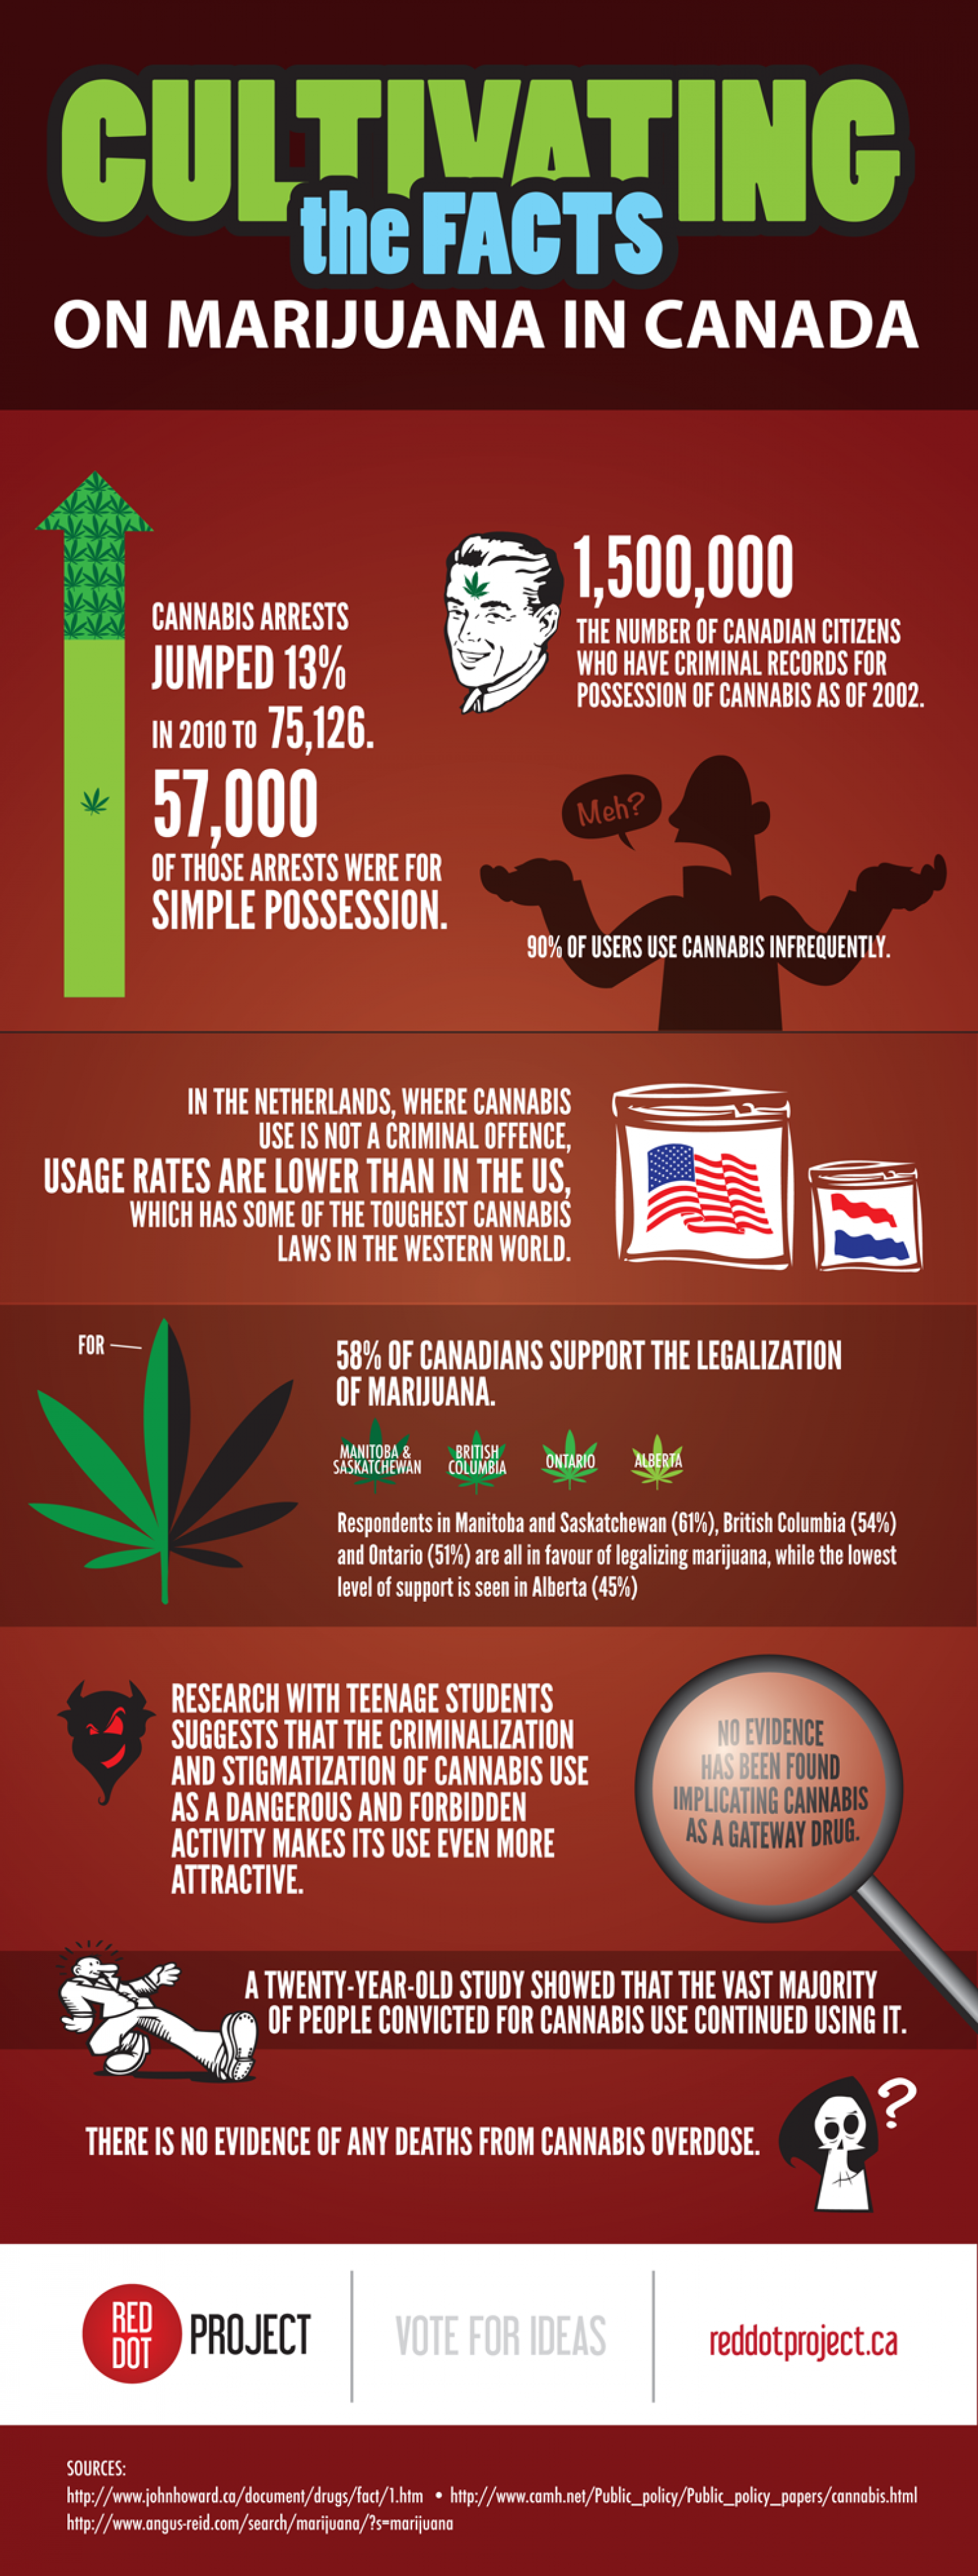 Cultivating The Facts on Marijuana in Canada Infographic